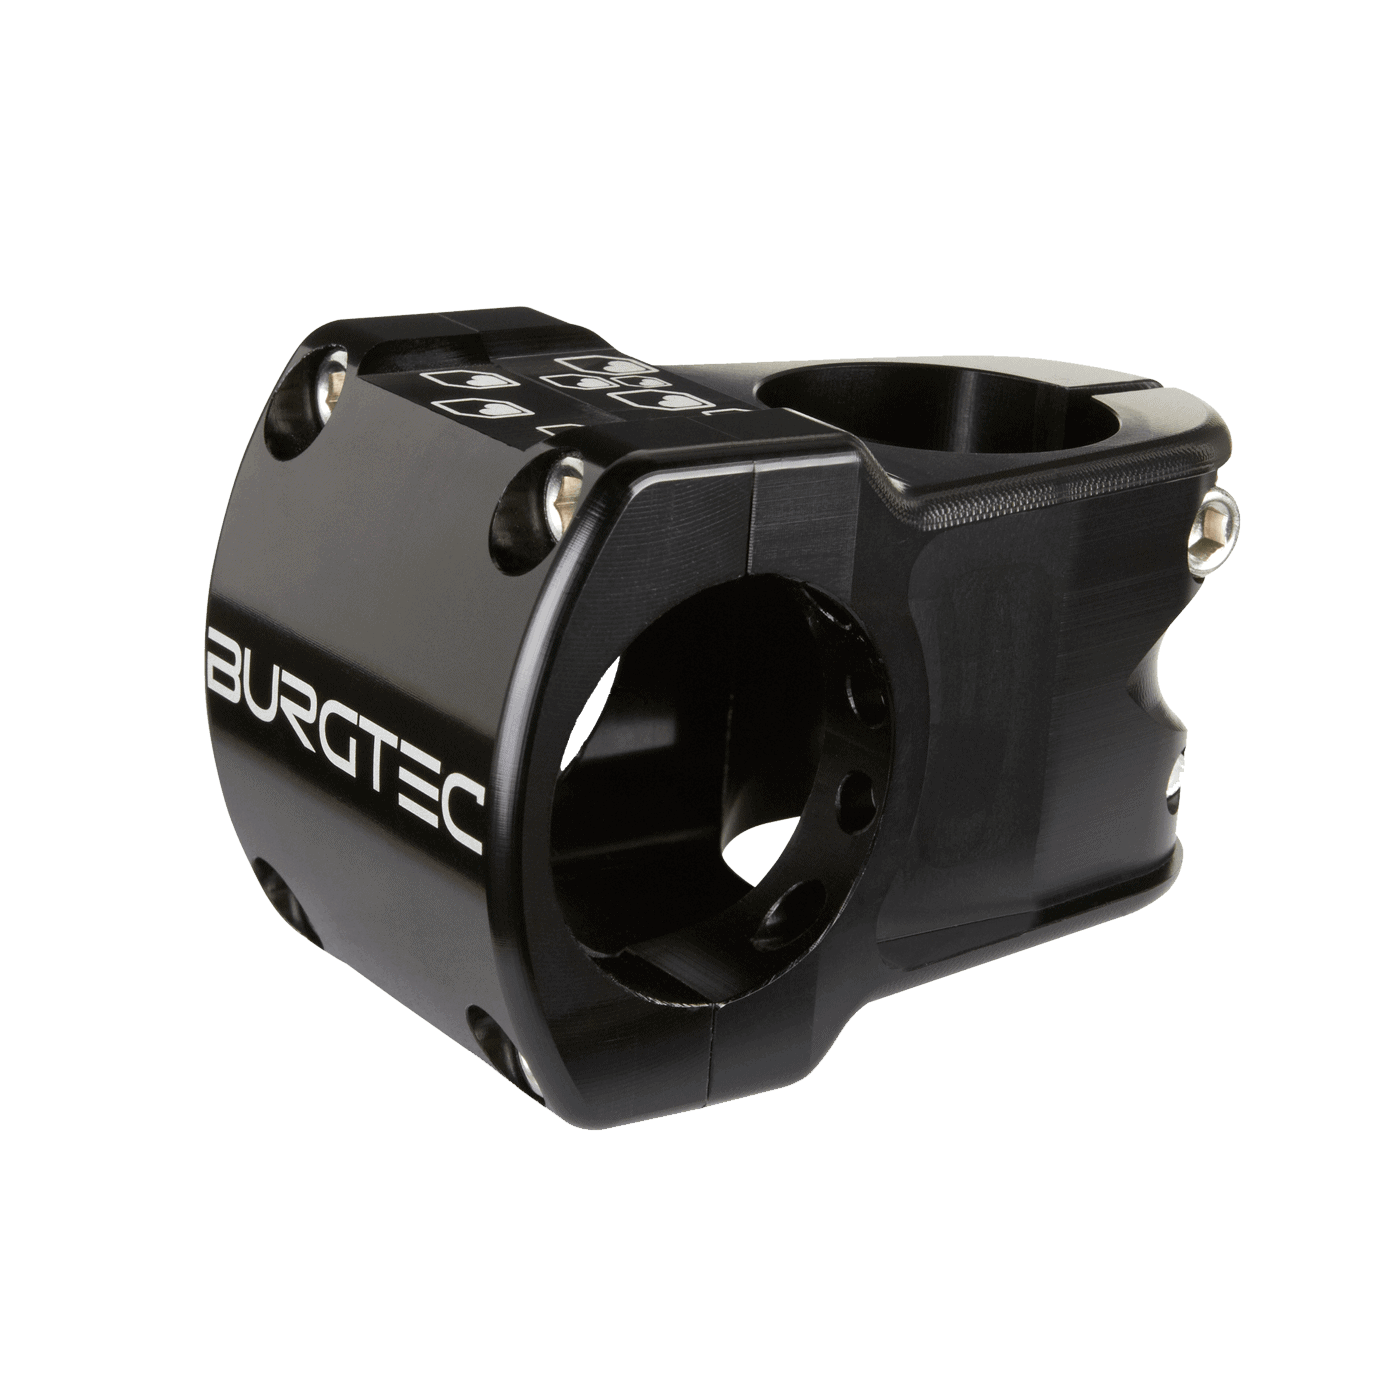 Enduro MK2 Stem Burgtec Black stem 35mm reach 31.8